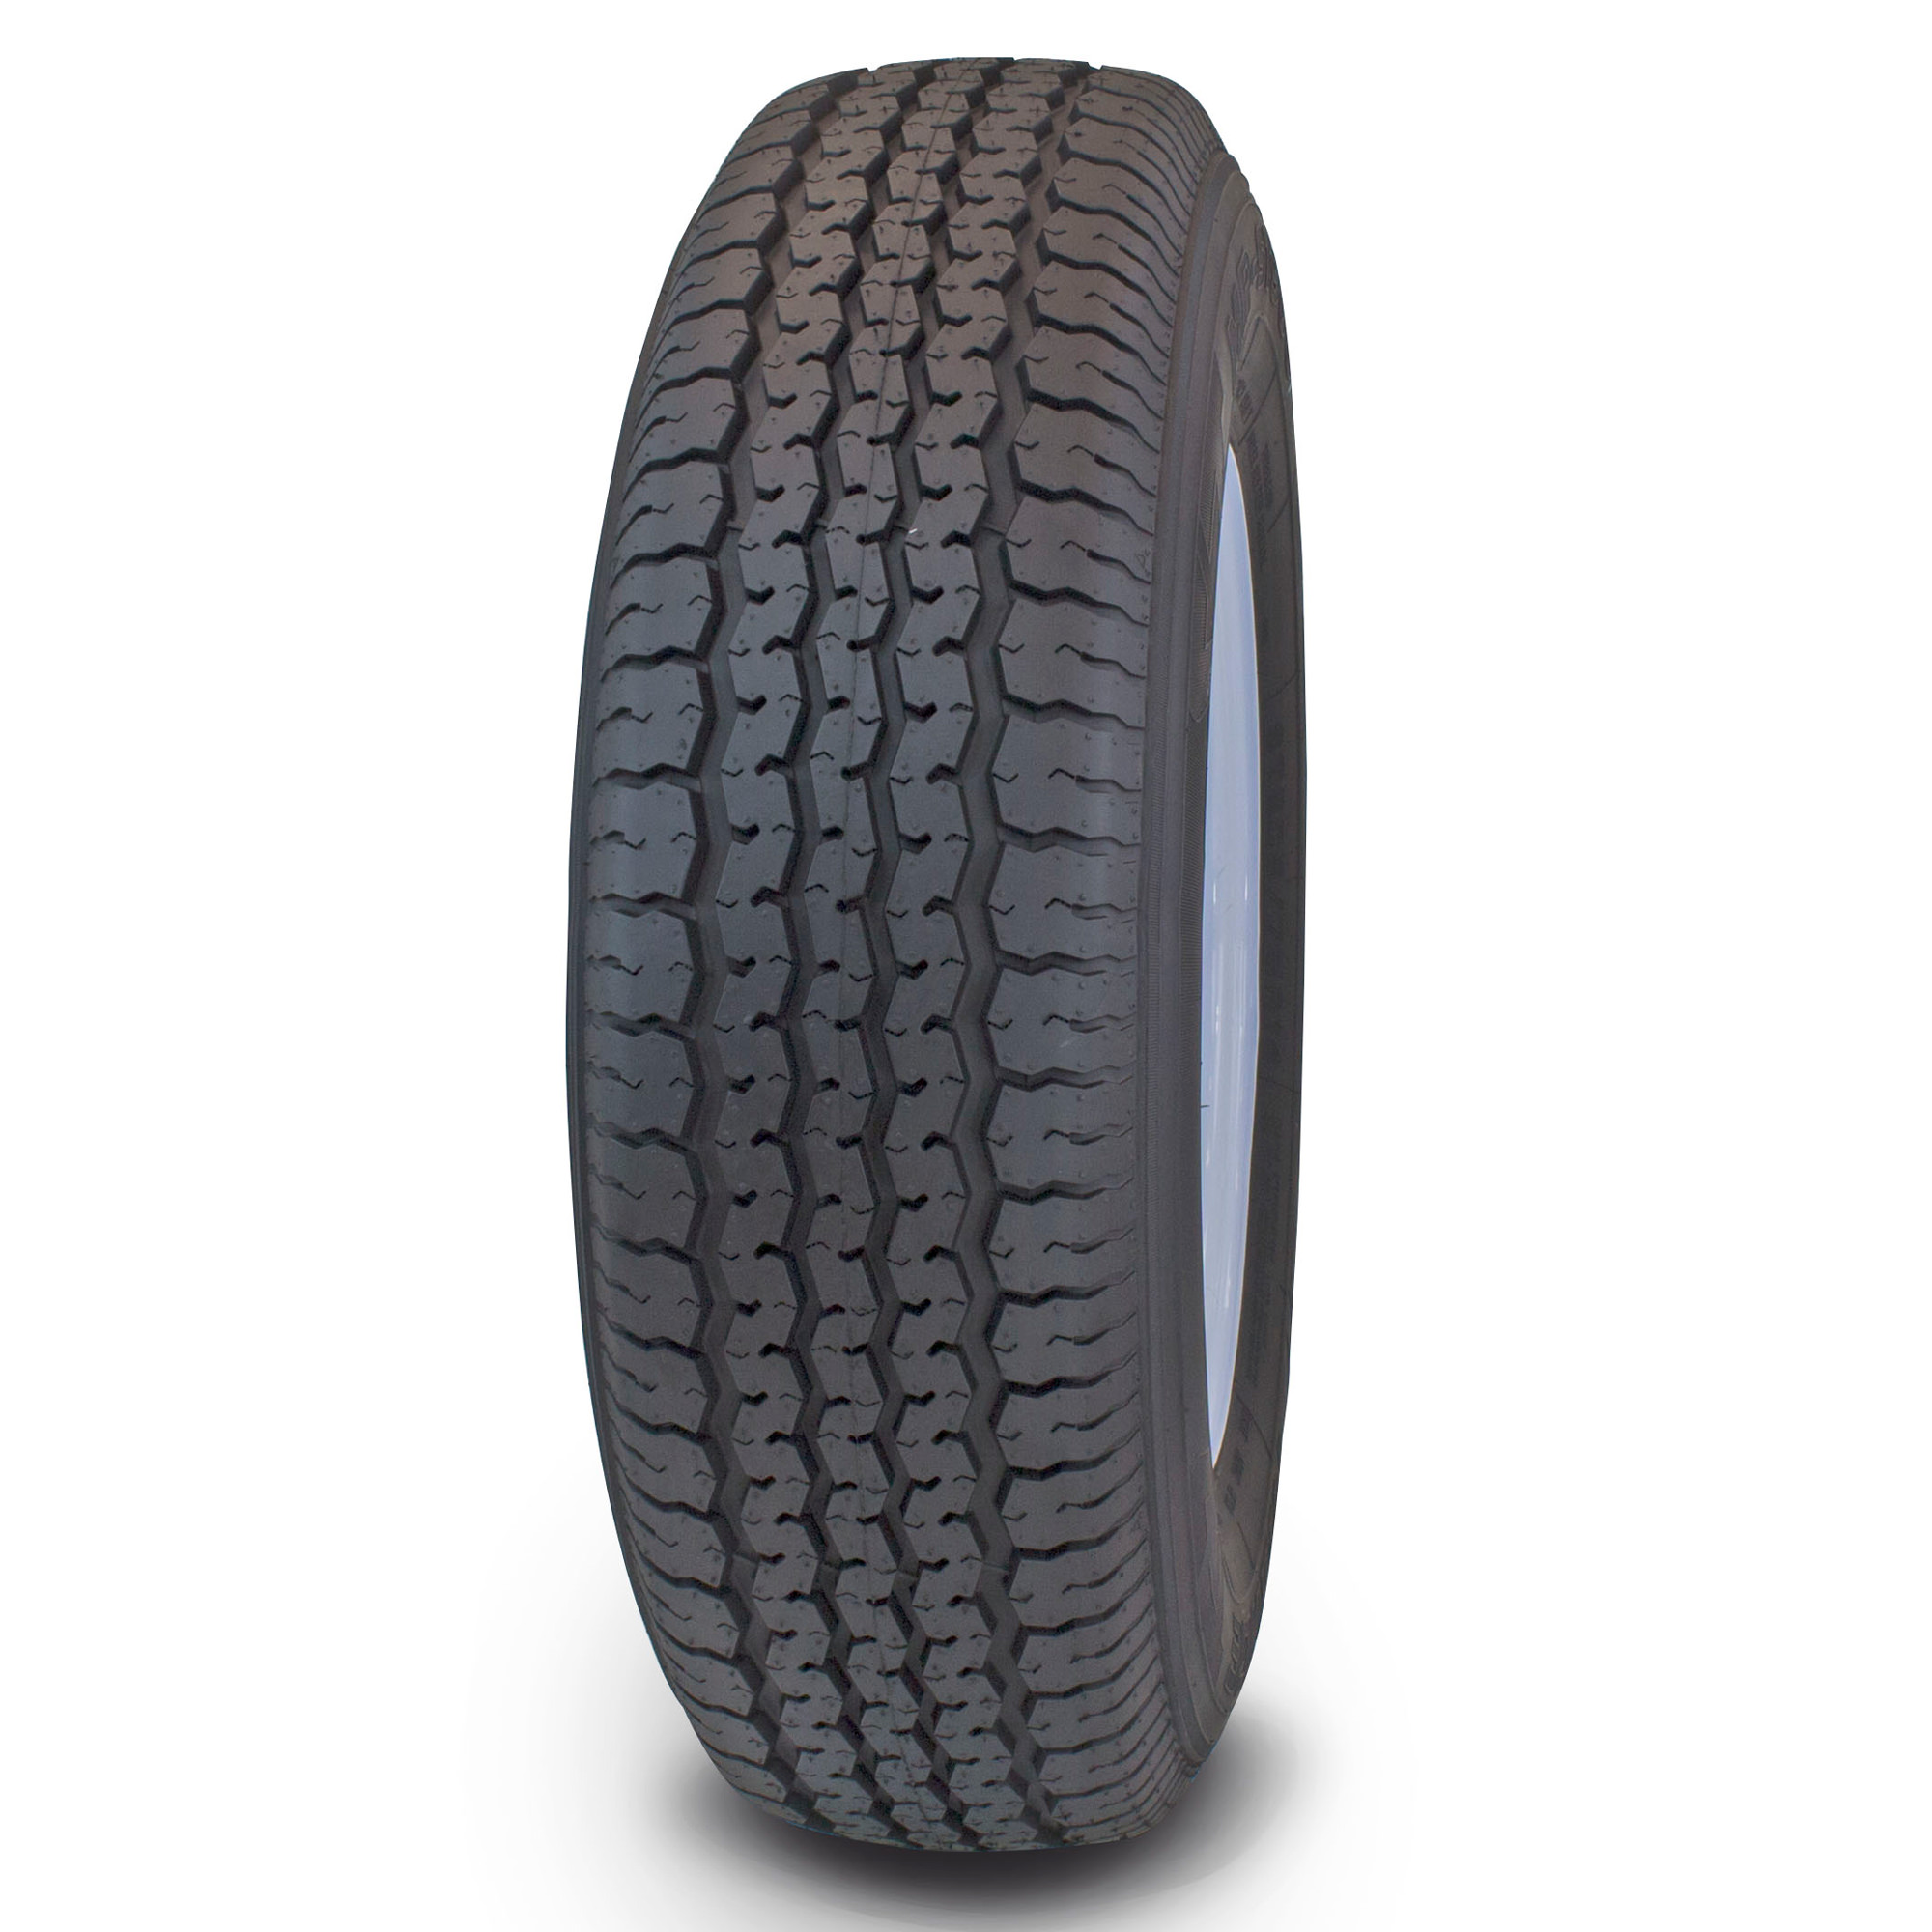 Greenball Transmaster EV ST225/75R15 8 ply Radial Trailer Tire (TIRE ONLY)